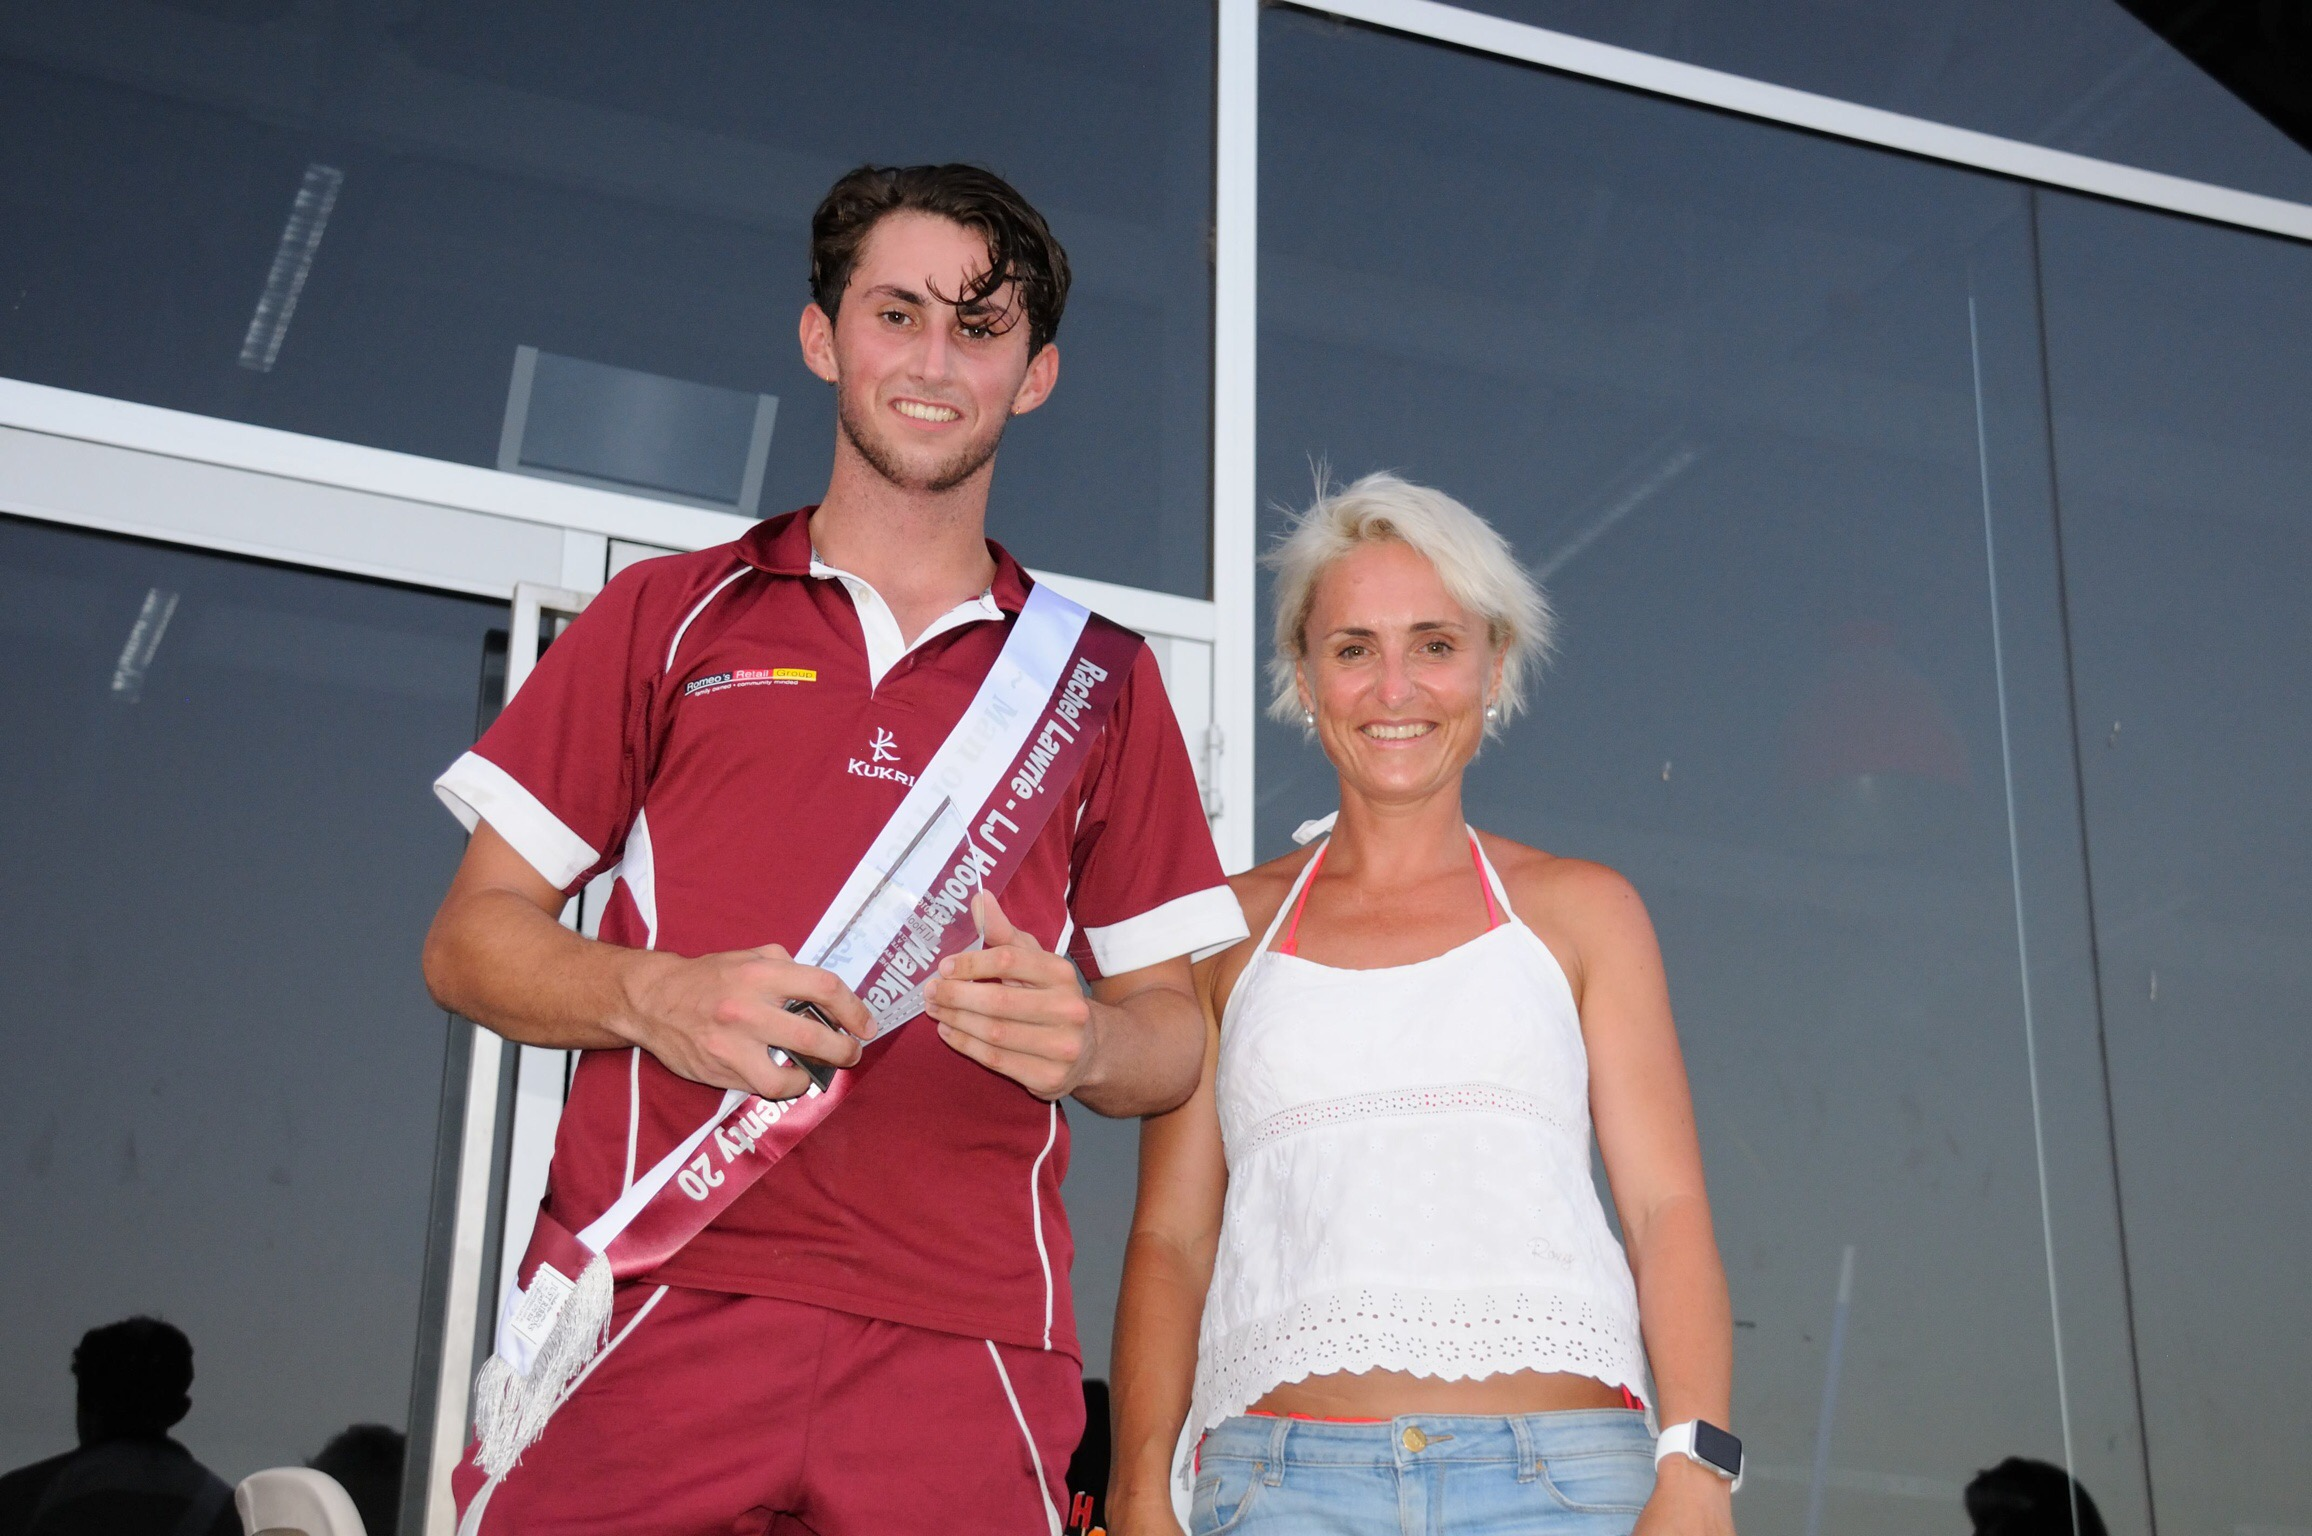 Fynn Hudson-Prentice receiving his Man of the Match trophy from one sun loving real estate sales person/organiser and maybe slightly worn out.